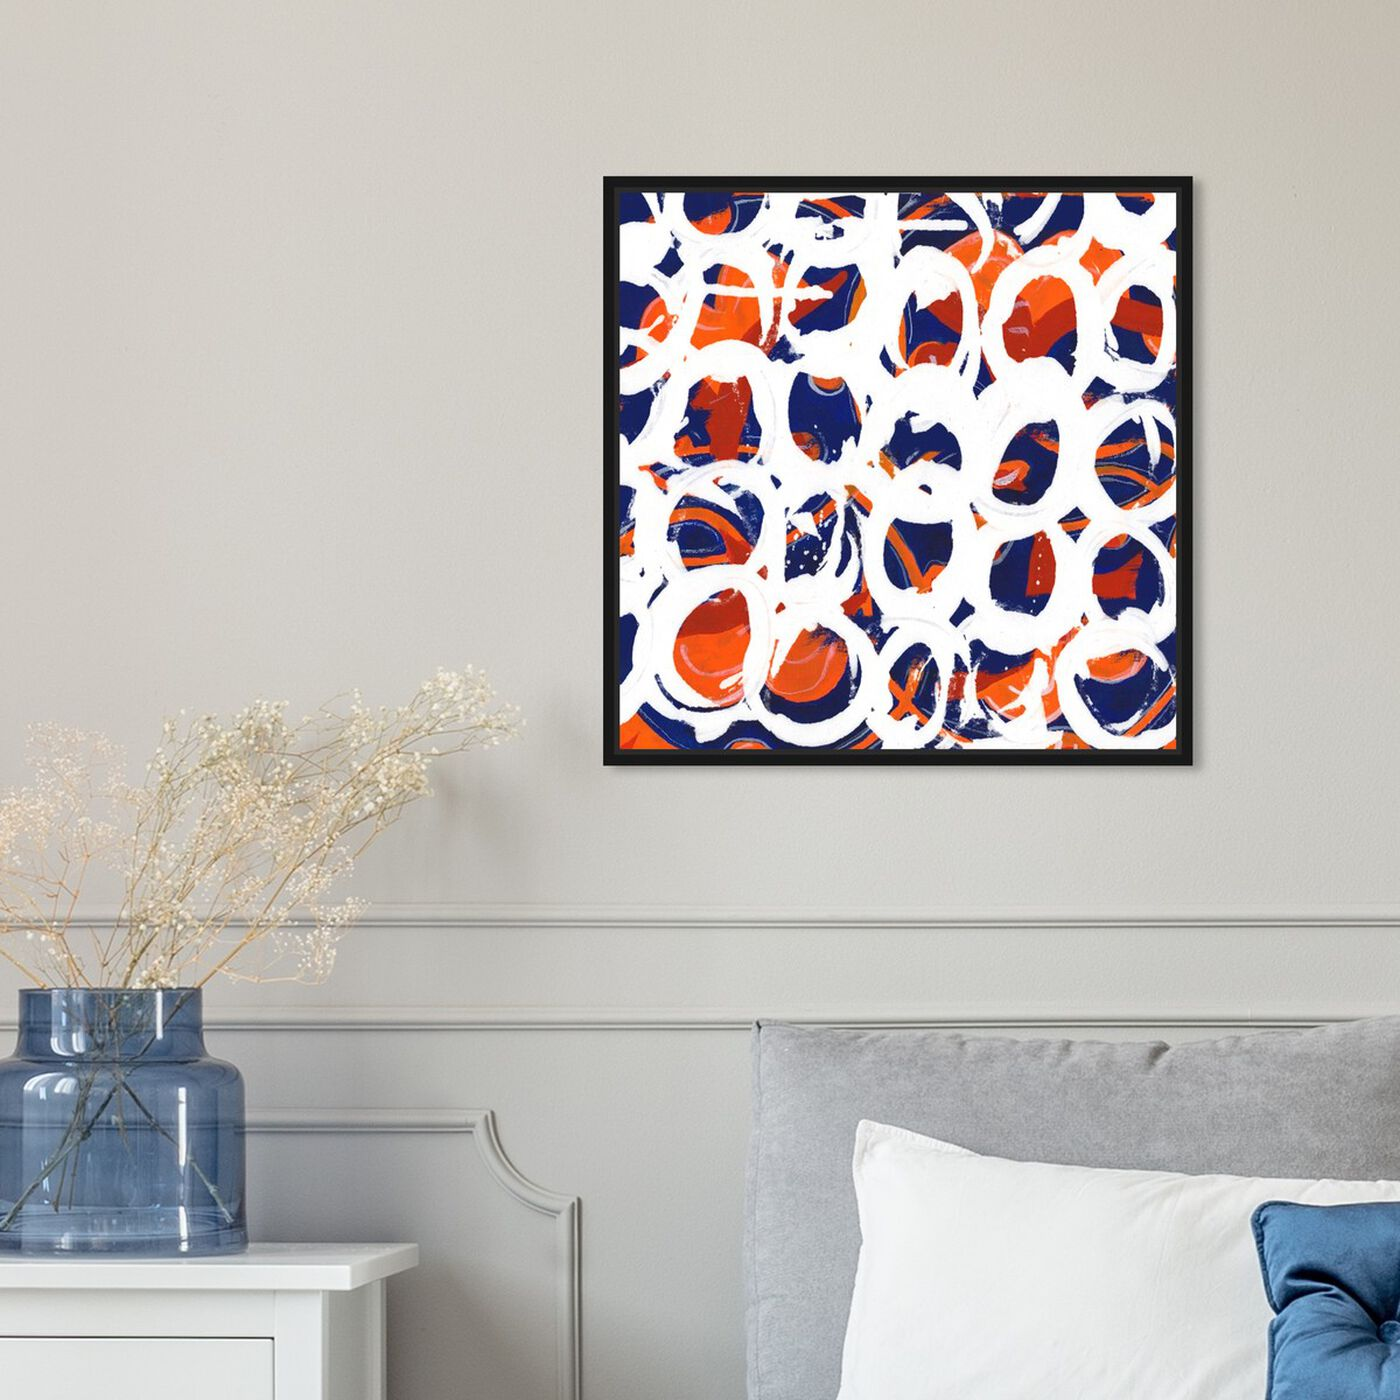 Hanging view of Waltz featuring abstract and geometric art.